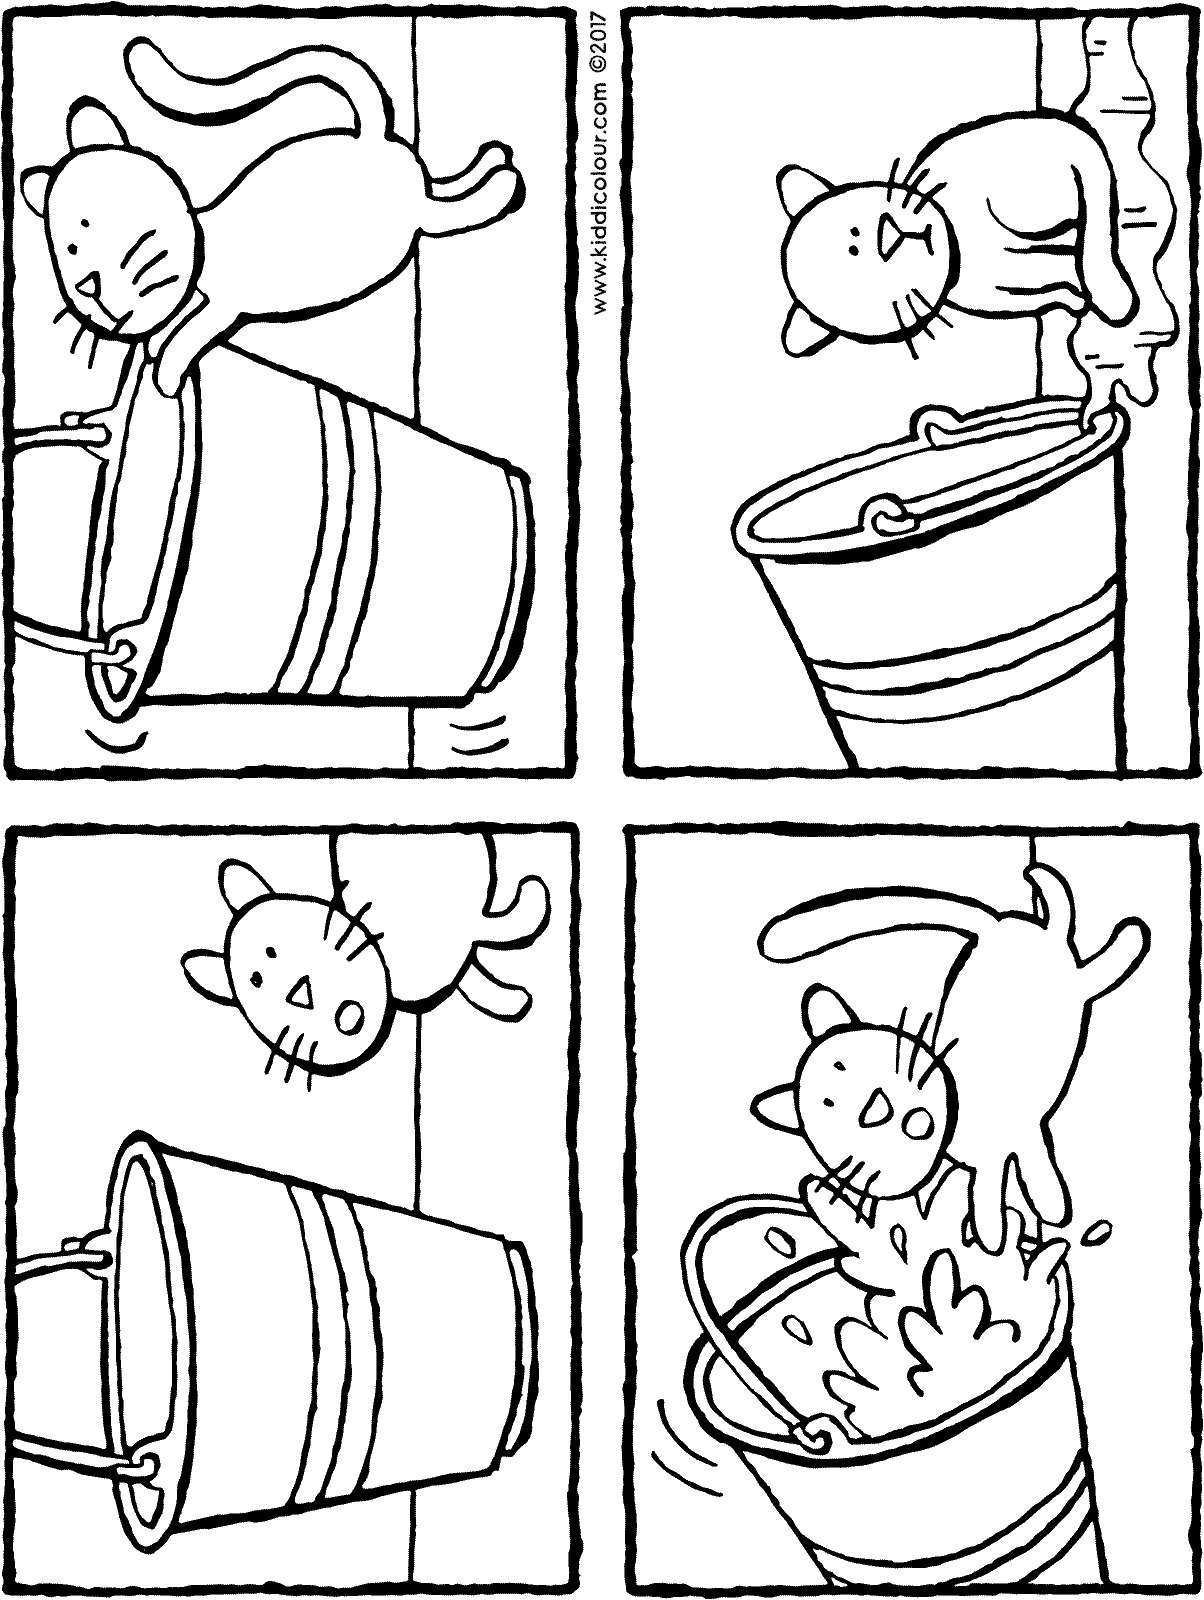 Bucket transparent colouring page. And cat kiddicolour story